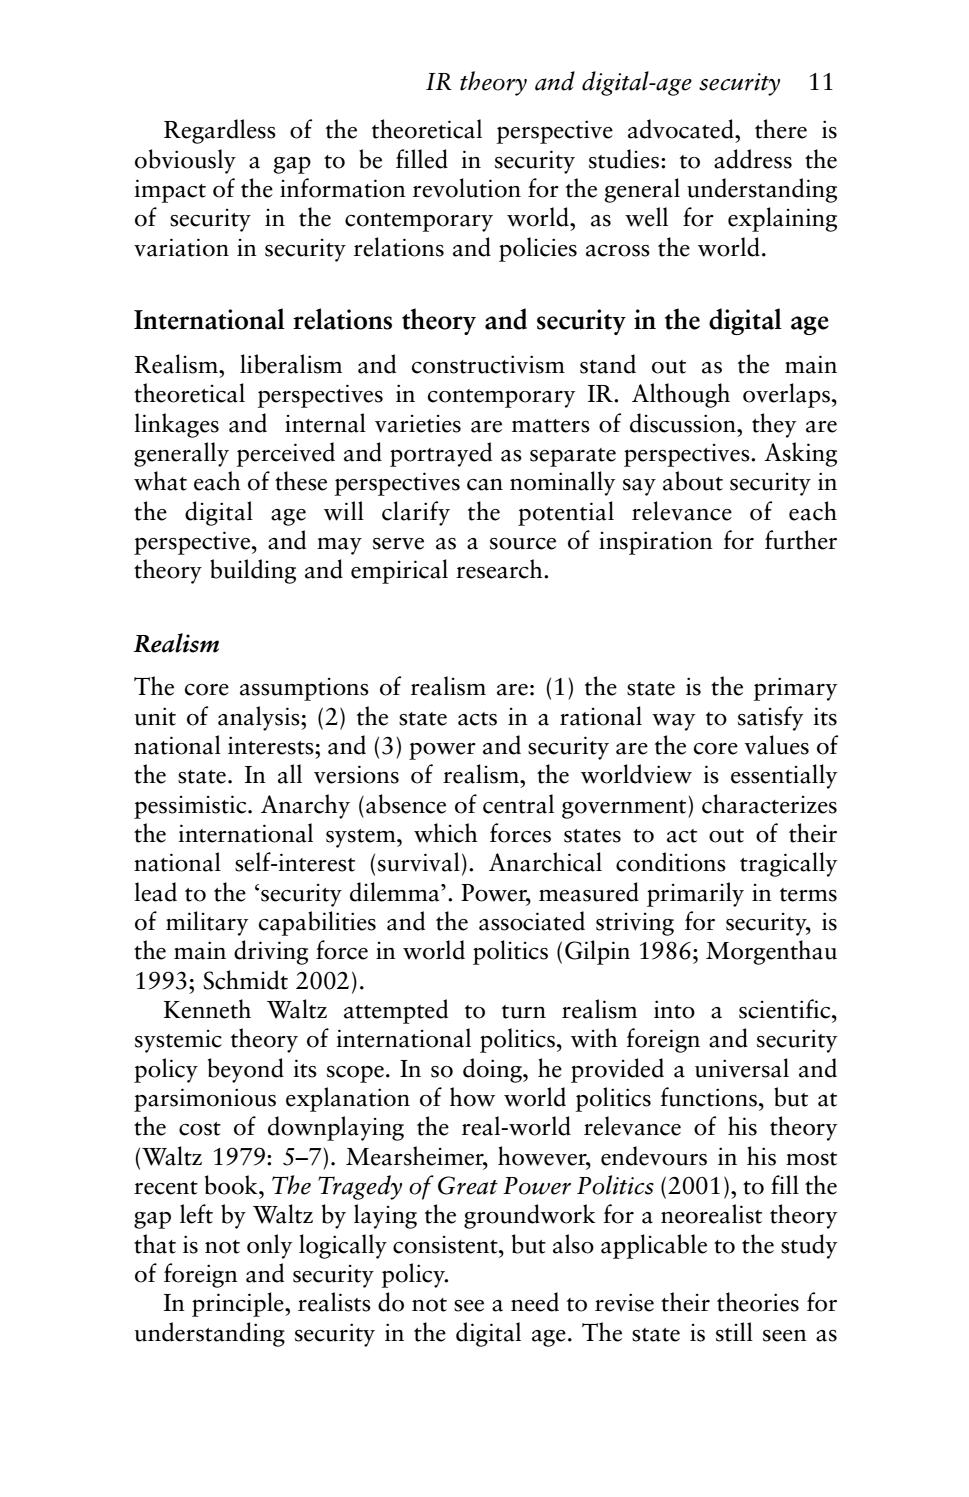 International Relations and Security in the Digital Age by Tarik